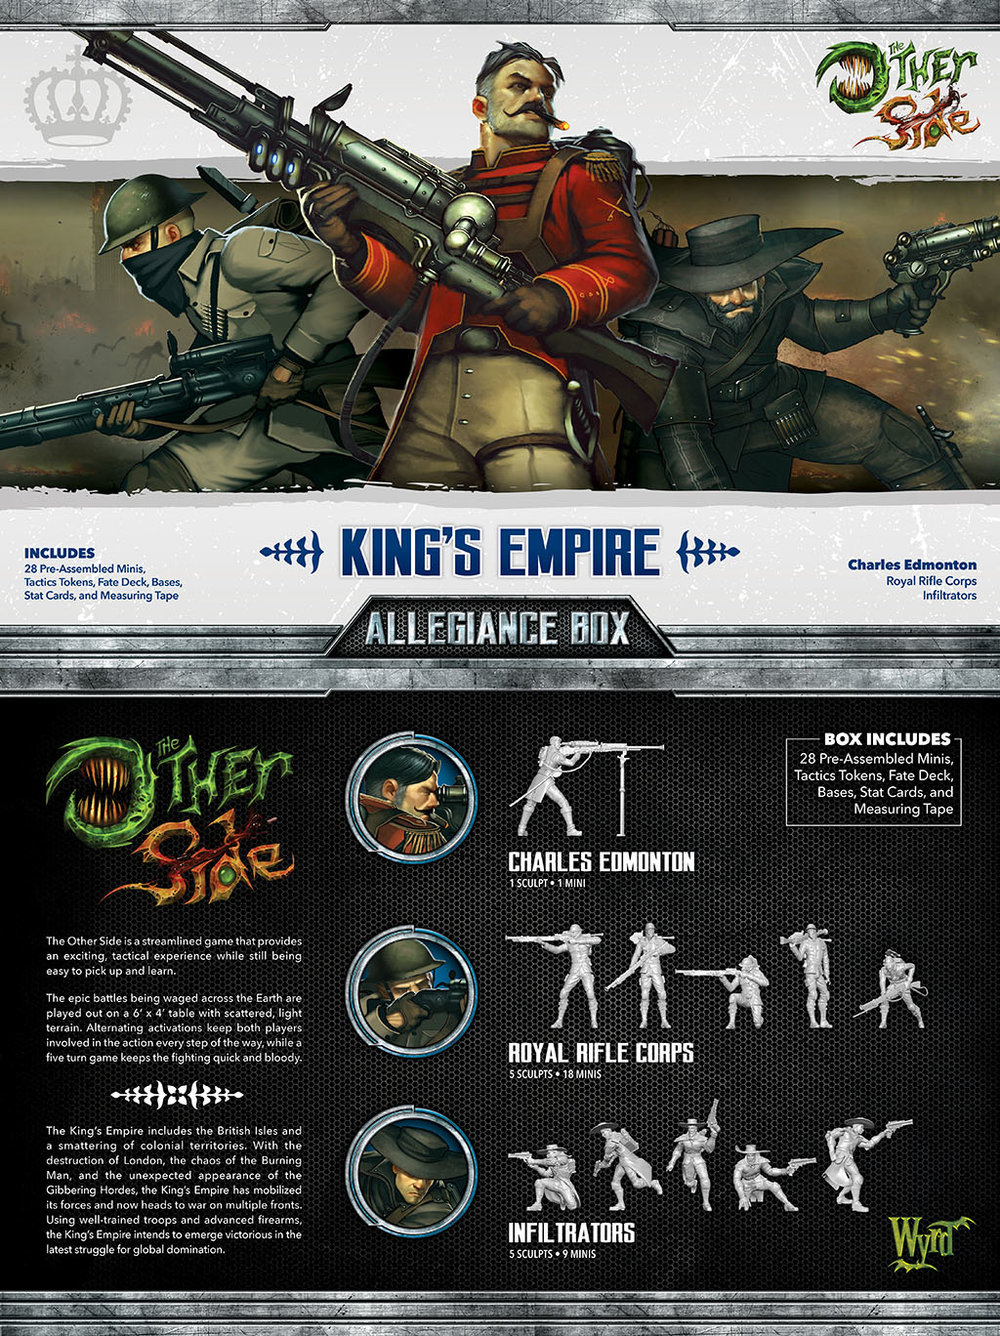 The Other Side: Kings Empire: Allegiance Box- Charles Edmonton